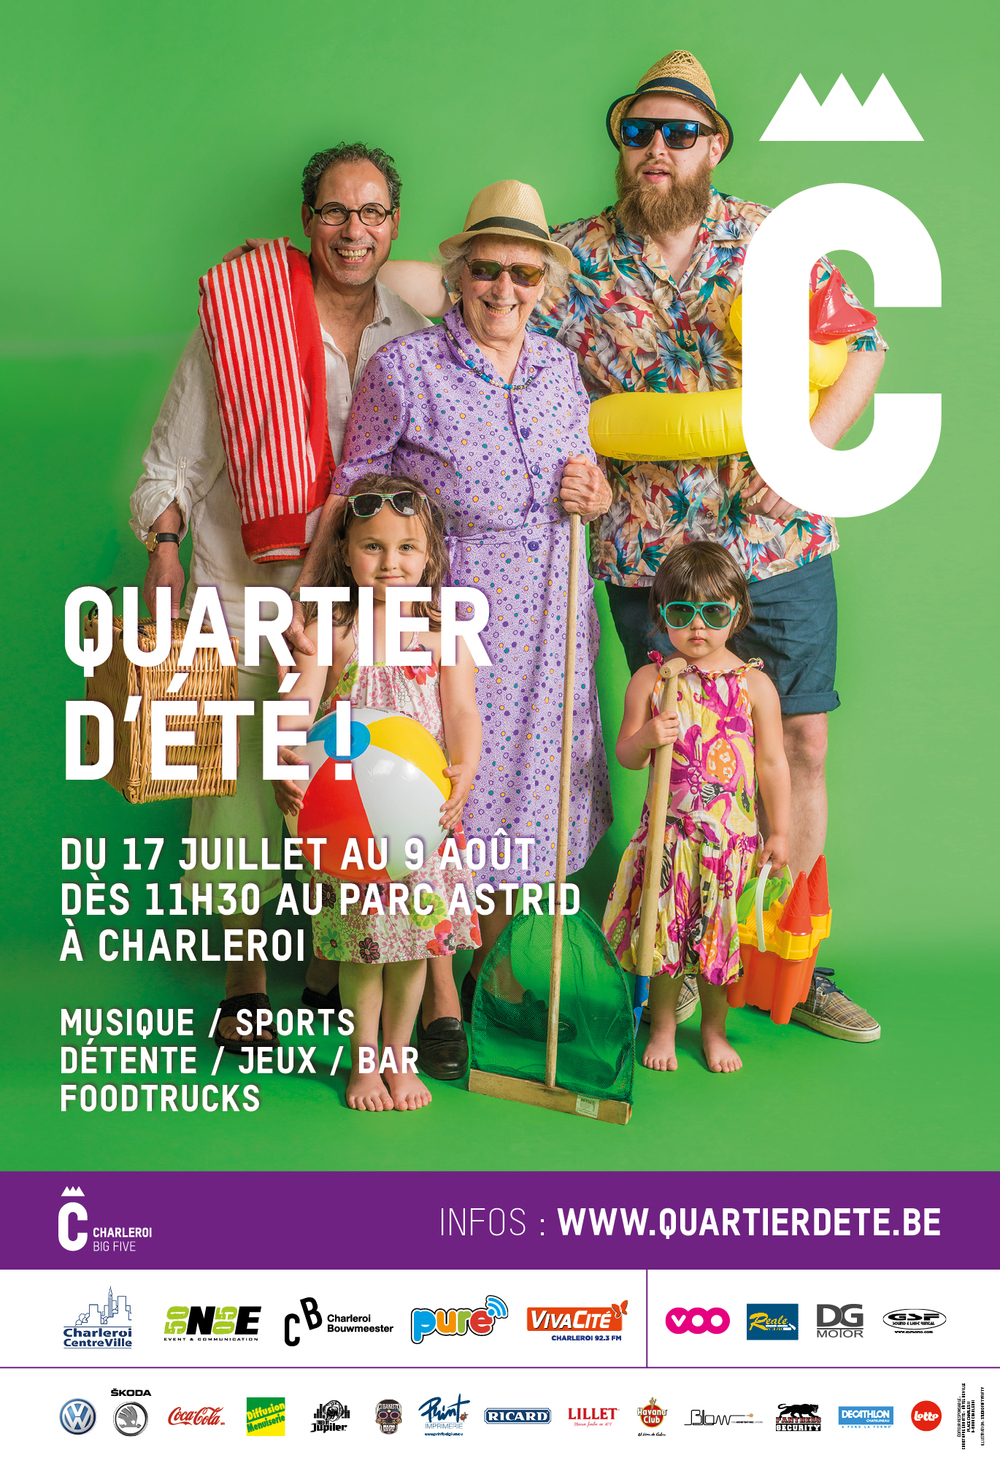 identite-charleroi-logo_BIG-FIVE_QUARTIER-ETE-2015